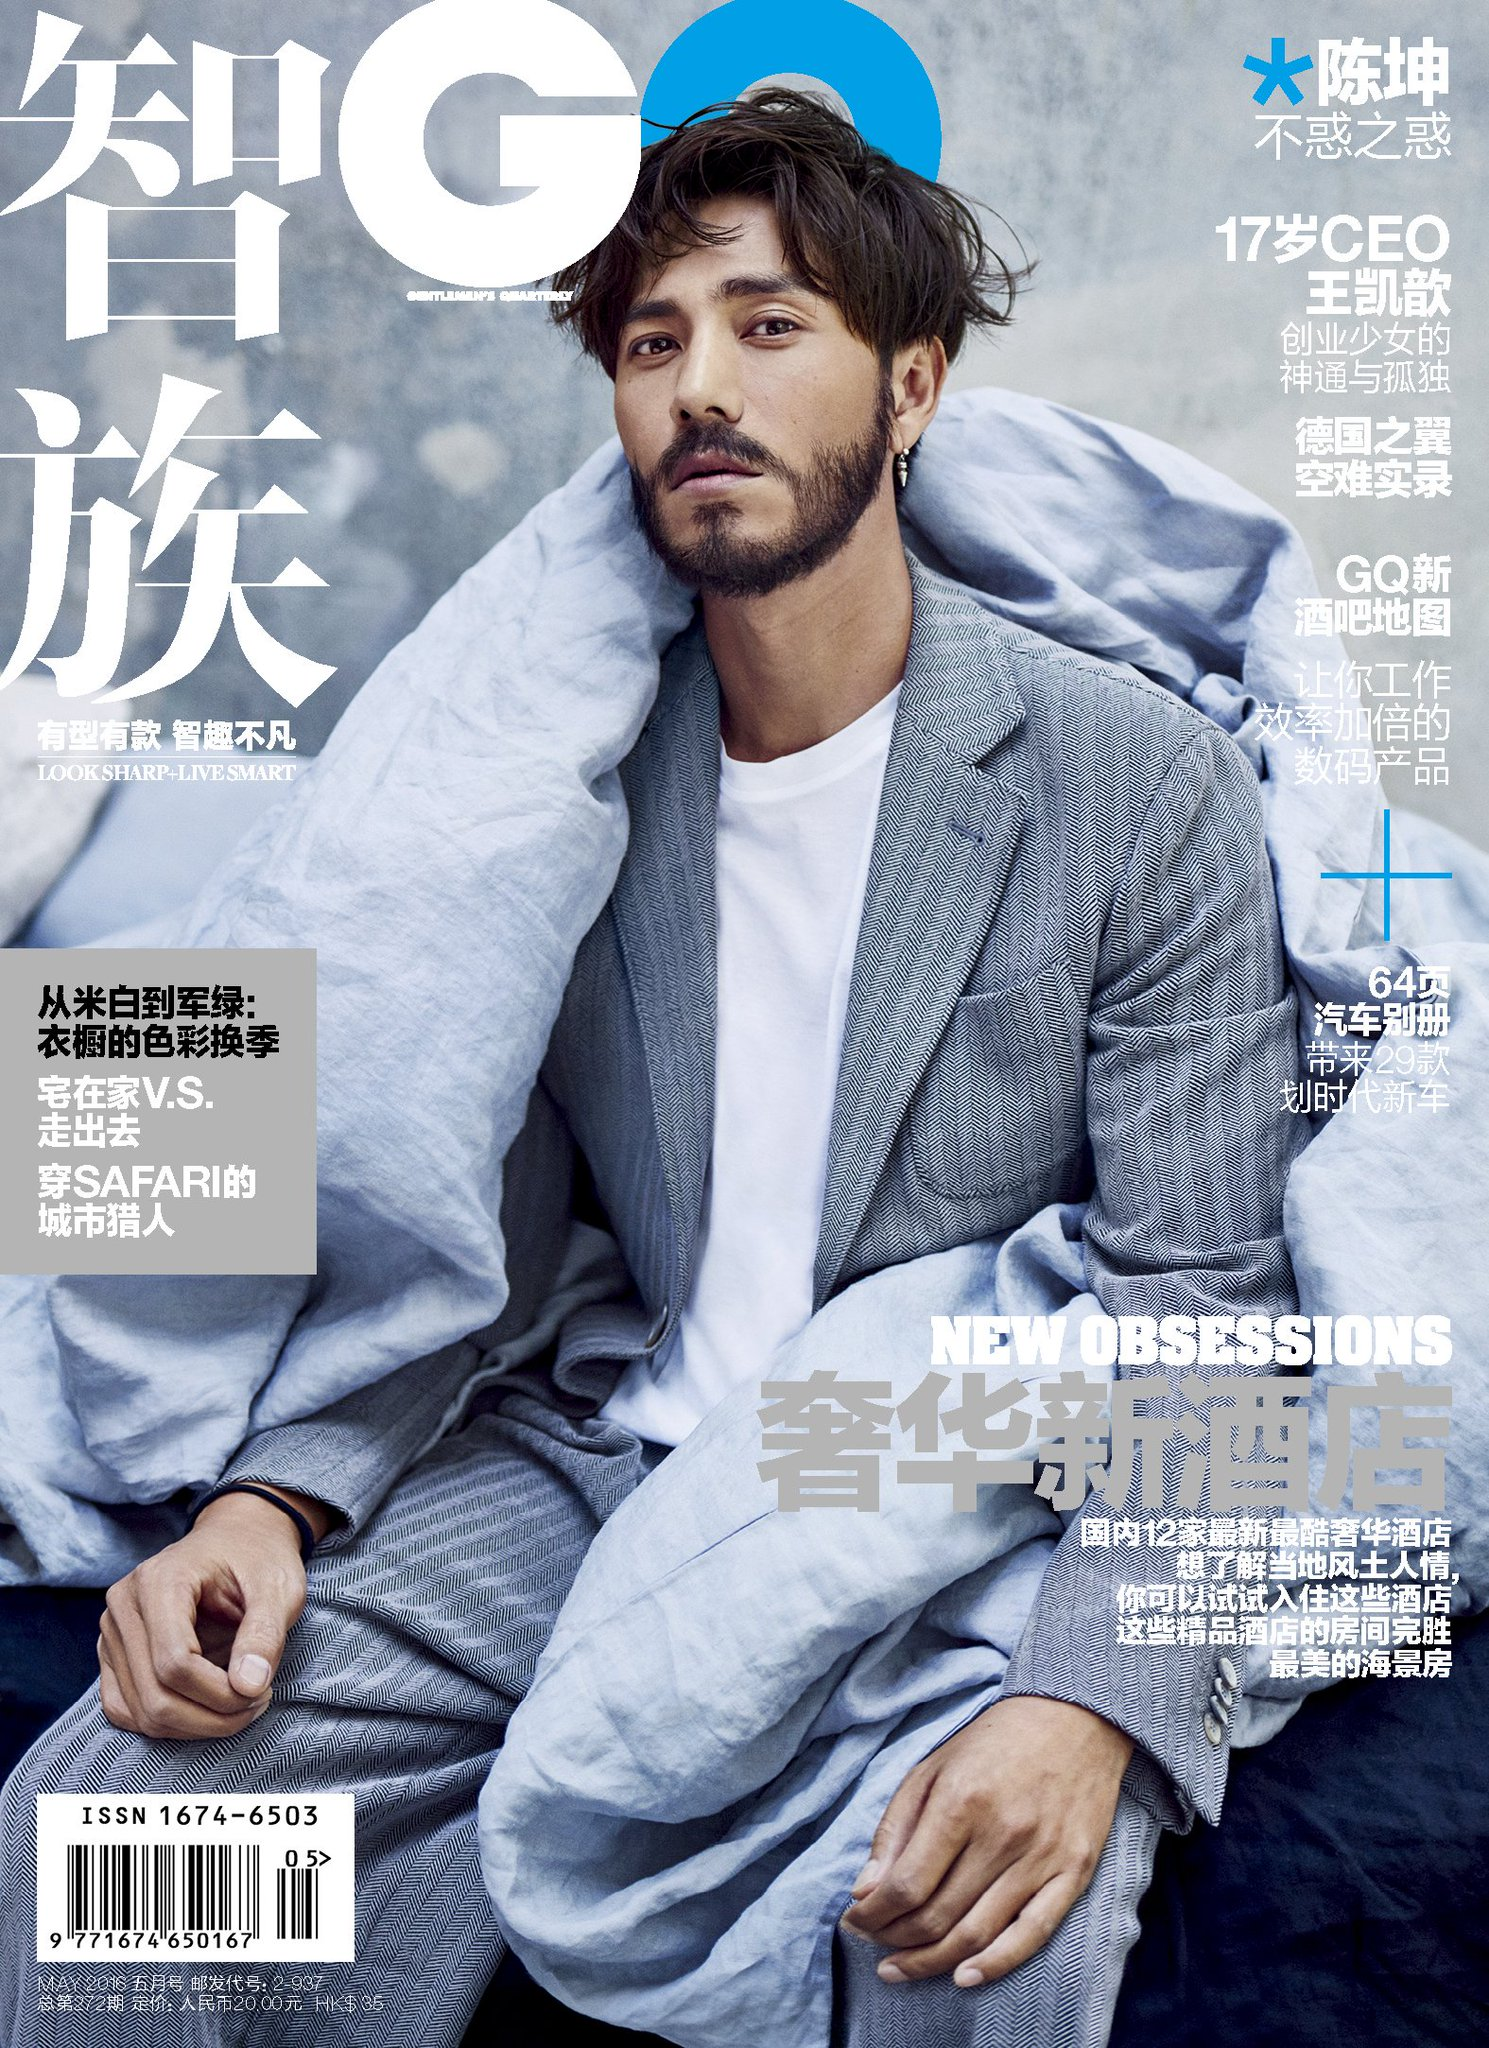 Actor #ChenKun, our Made to Measure ambassador, wearing a #GiorgioArmani #SS16 look on the May cover of Chinese GQ. https://t.co/2SpuwOsSL9